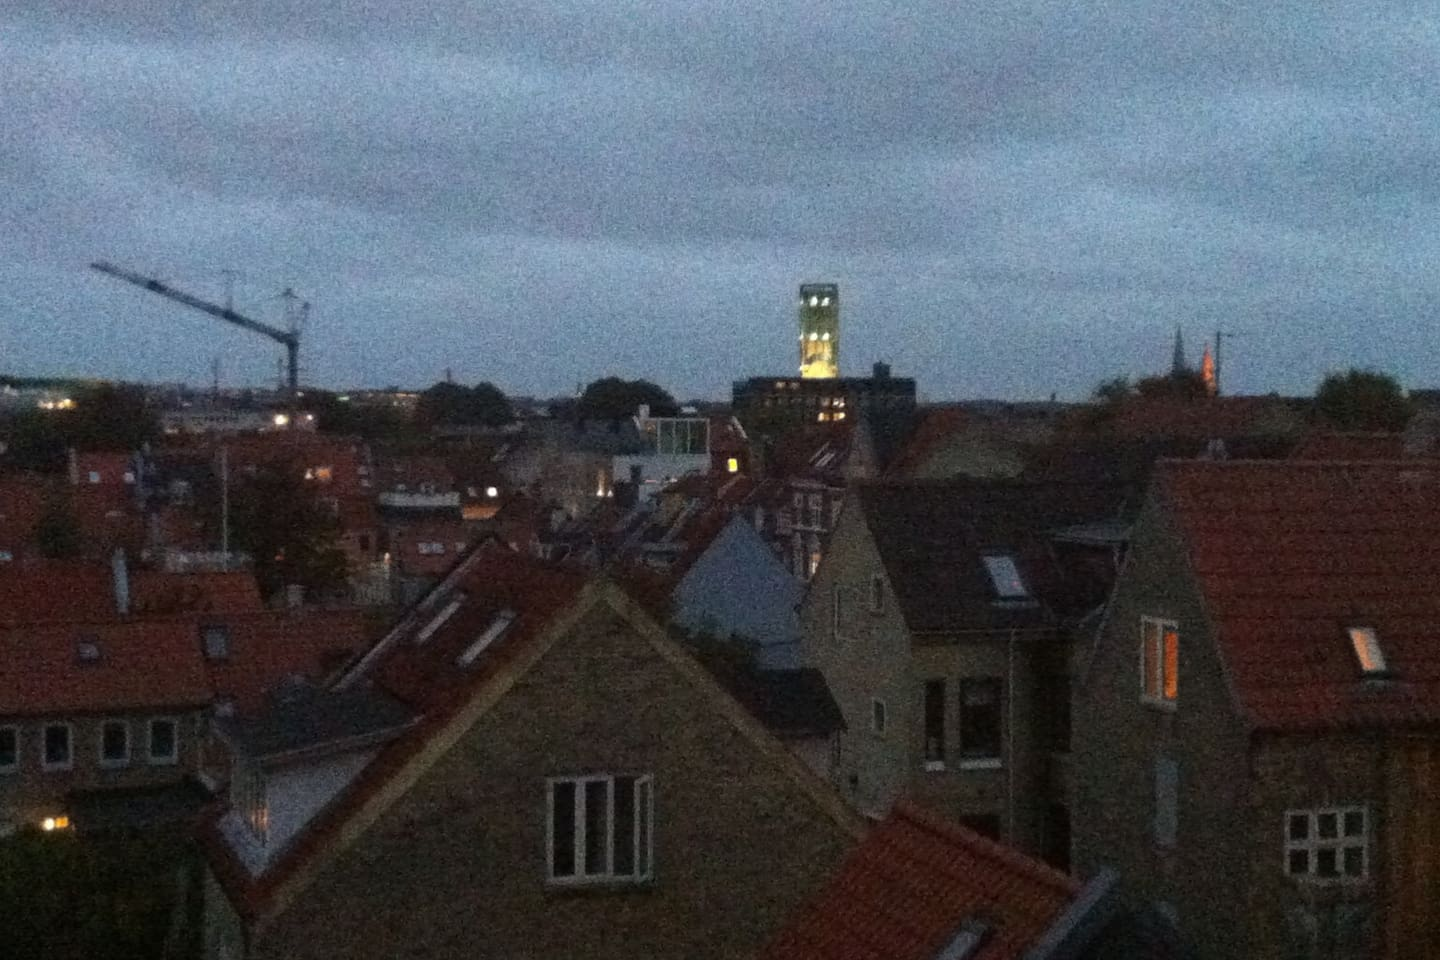 Great view over central Aarhus